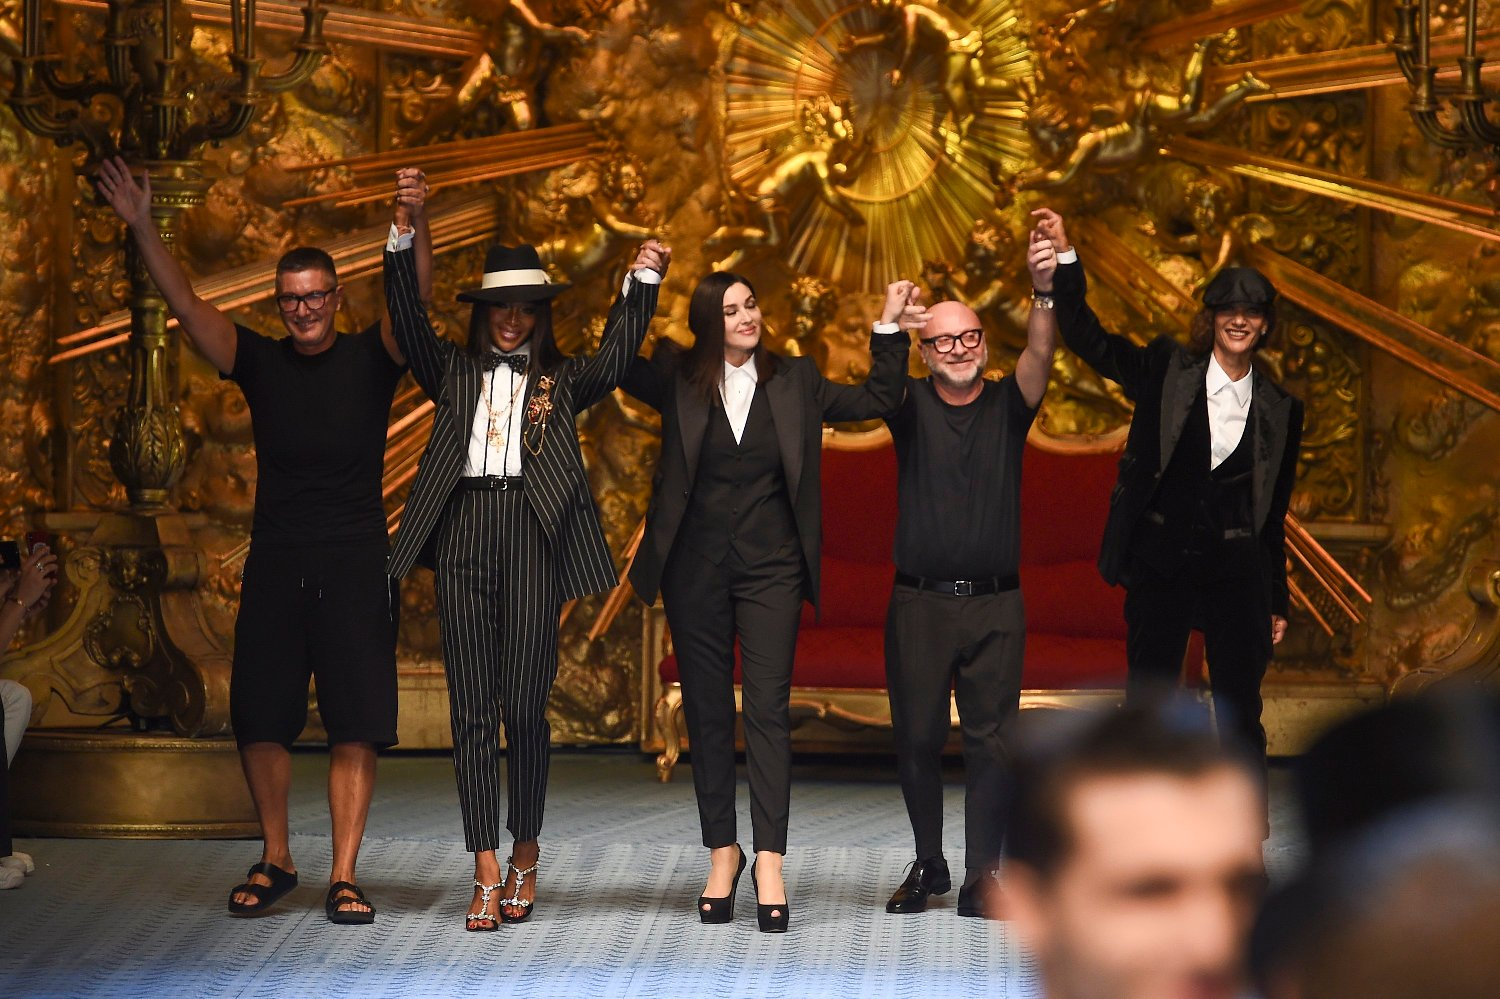 Stefano gabbana;naomi campbell;monica bellucci;domenico dolce;marpessa  Man Fashion Week SS 19 Dolce&Gabbana Catwalk Milan - Italy 16th june 2018 id  117946_003, Image: 375168220, License: Rights-managed, Restrictions: , Model Release: no, Credit line: Profimedia, SGP